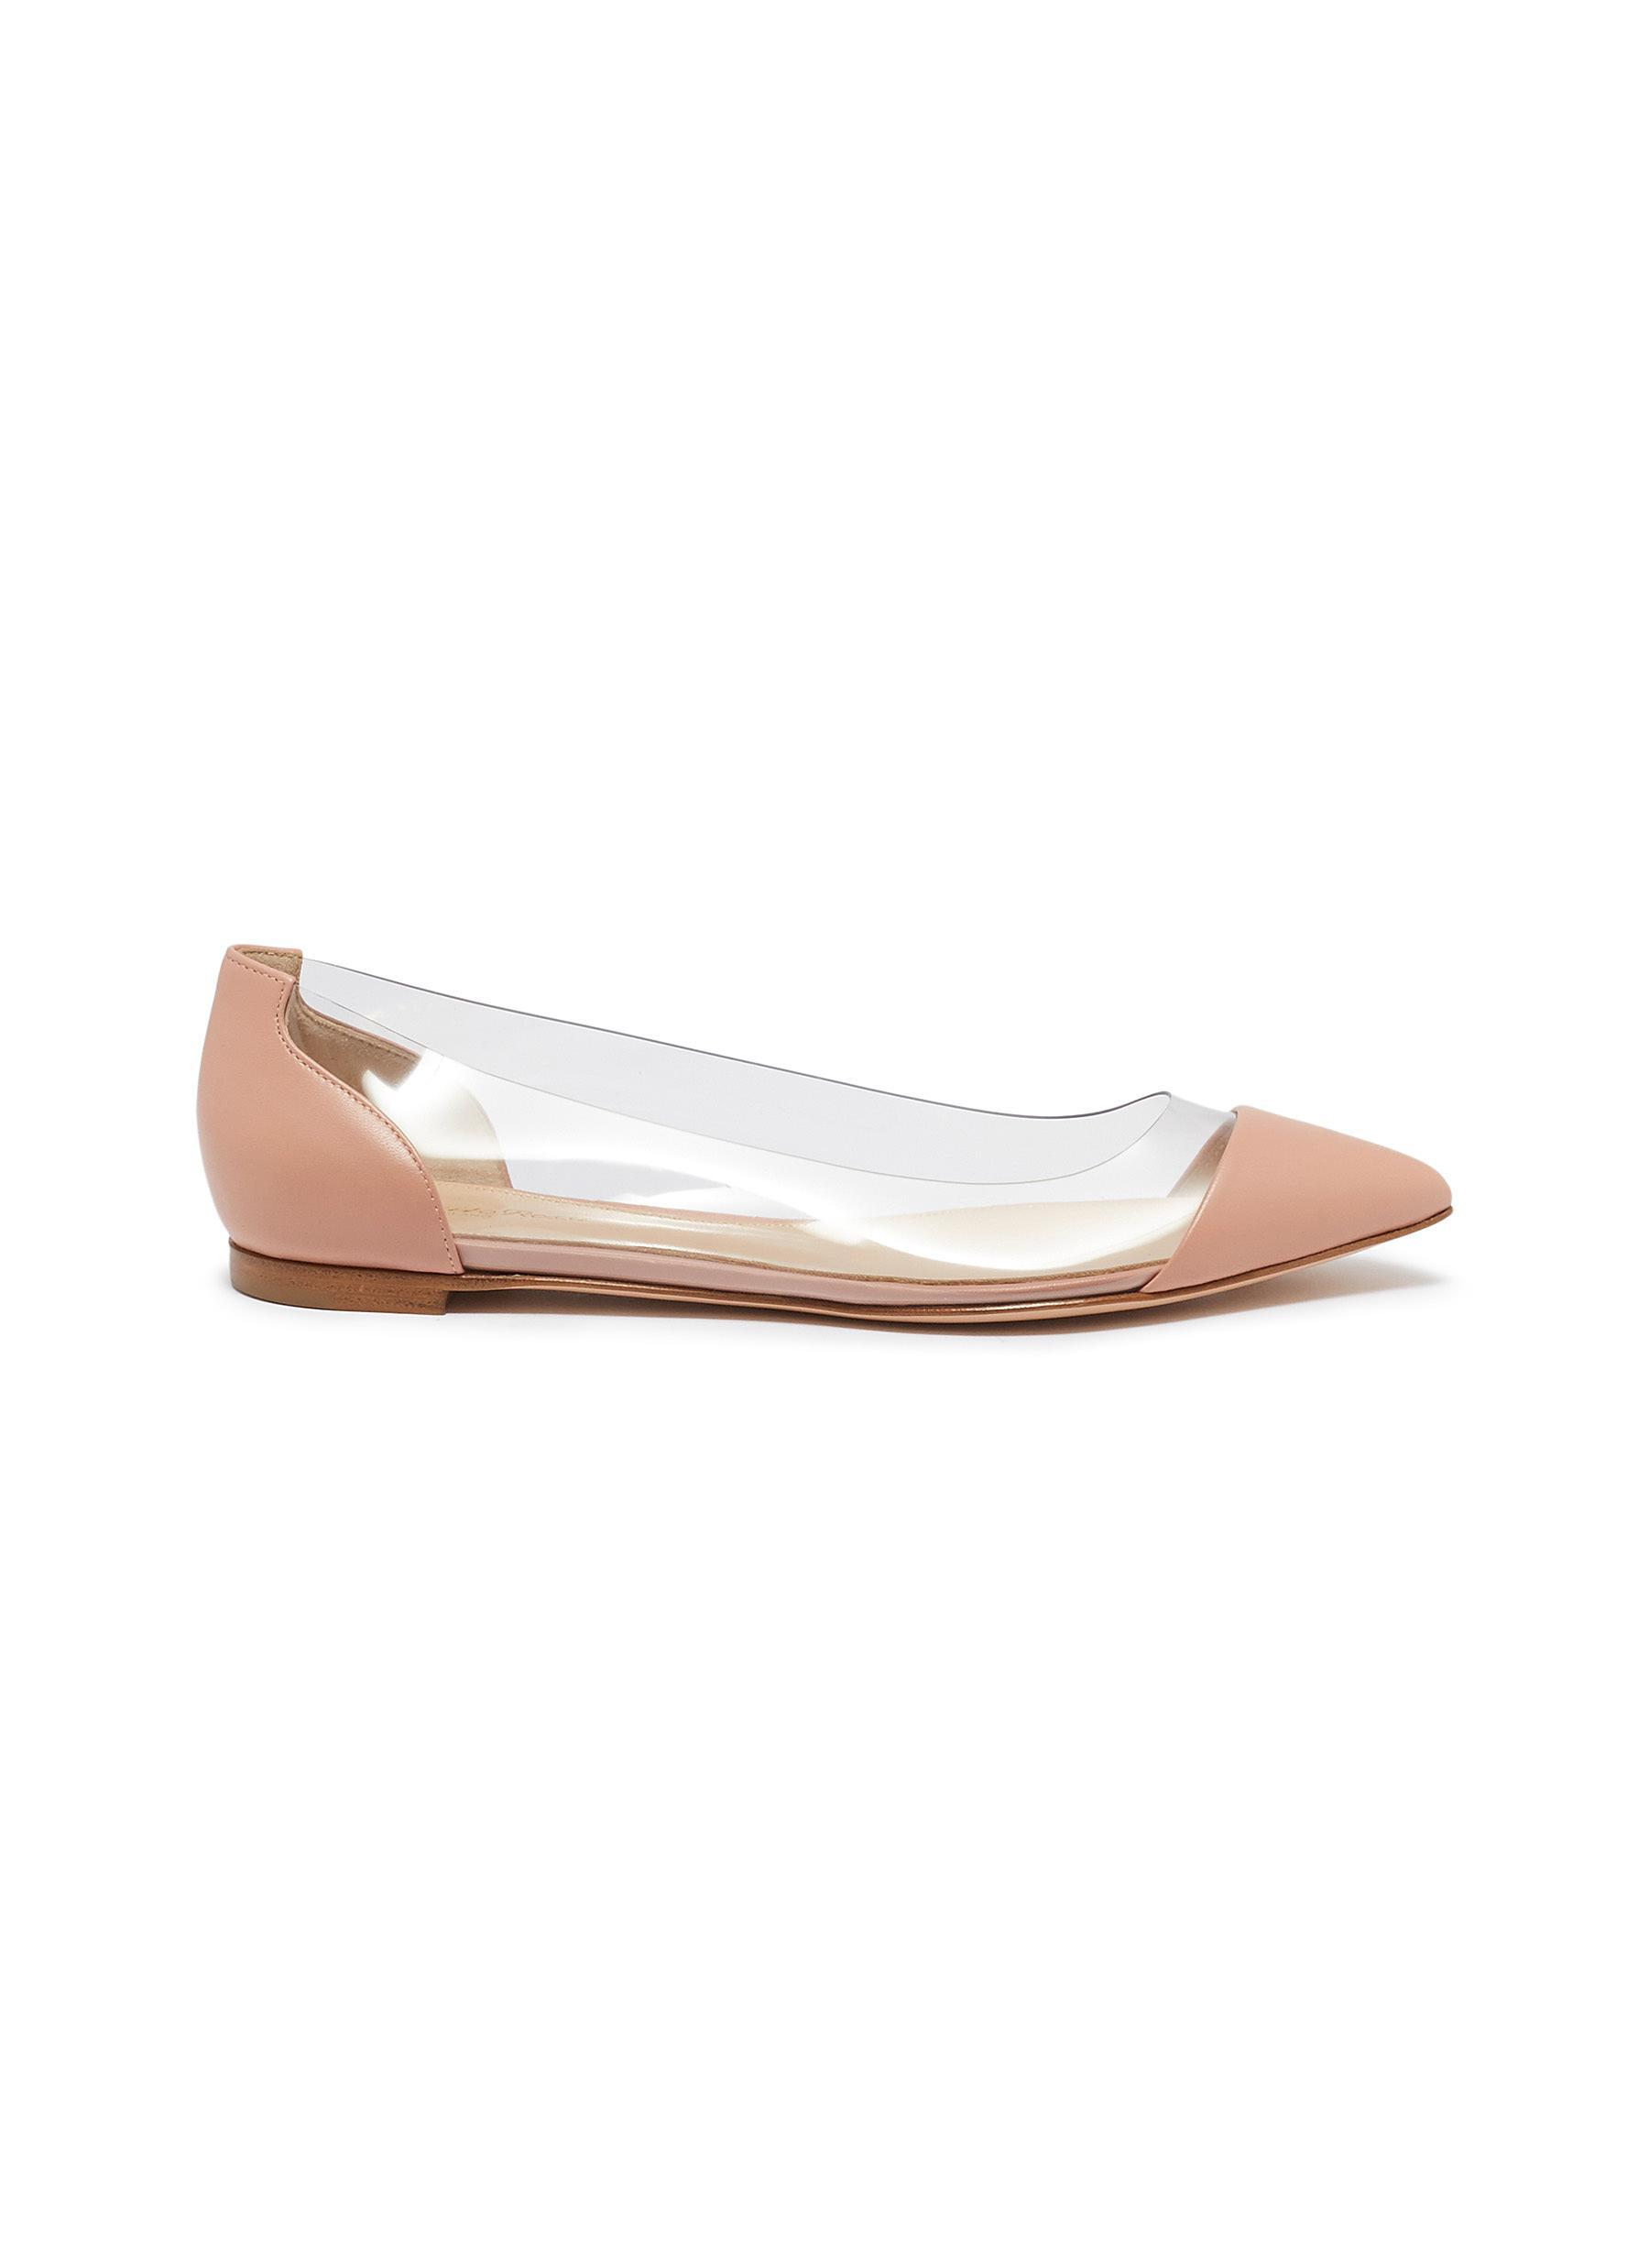 90a9787ab38 Gianvito Rossi  plexi  Clear Pvc Leather Flats in Pink - Save ...